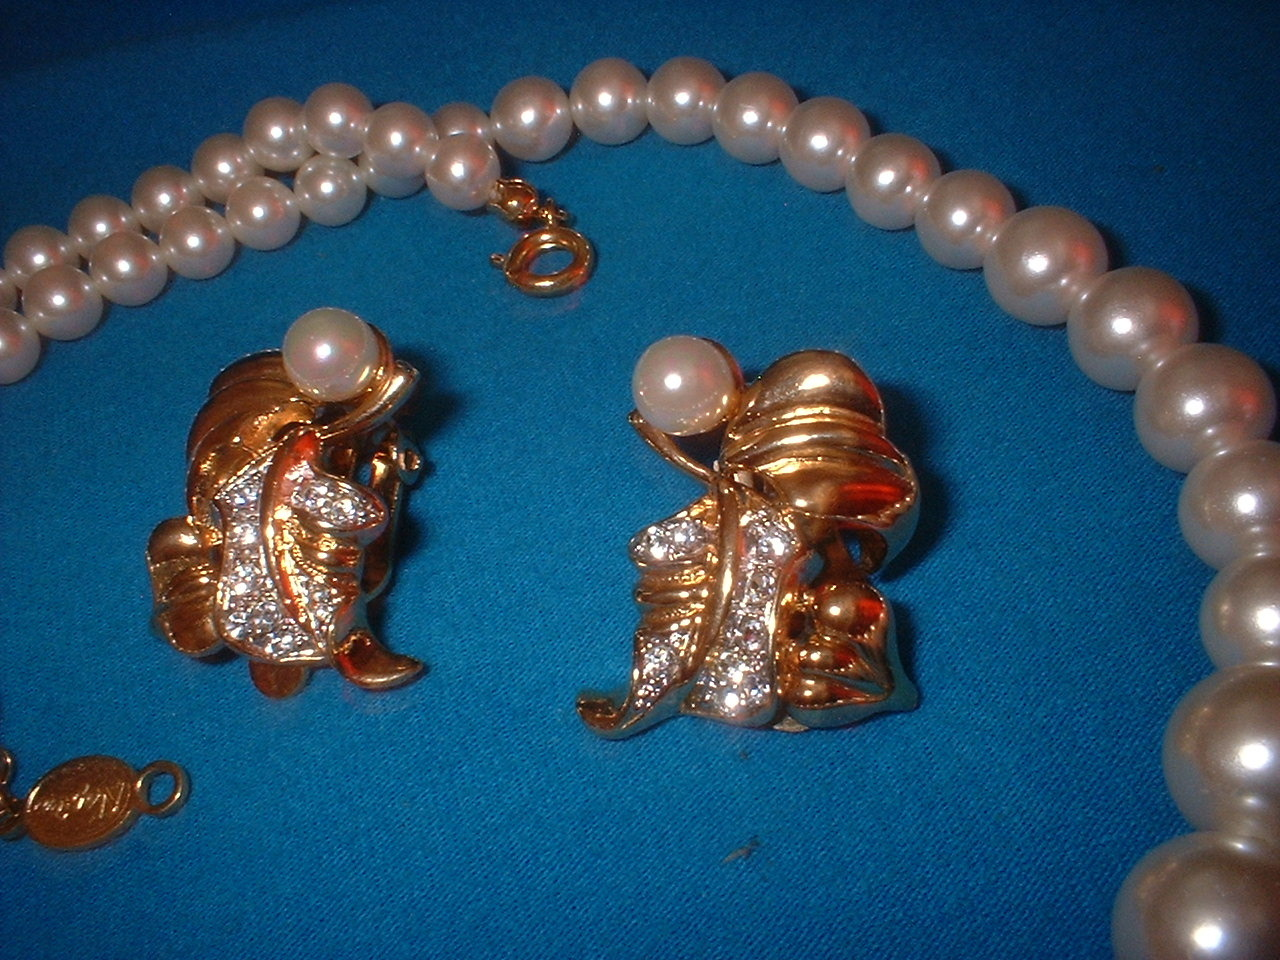 Vintage Jewelry Imitation Pearl Necklace Earrings